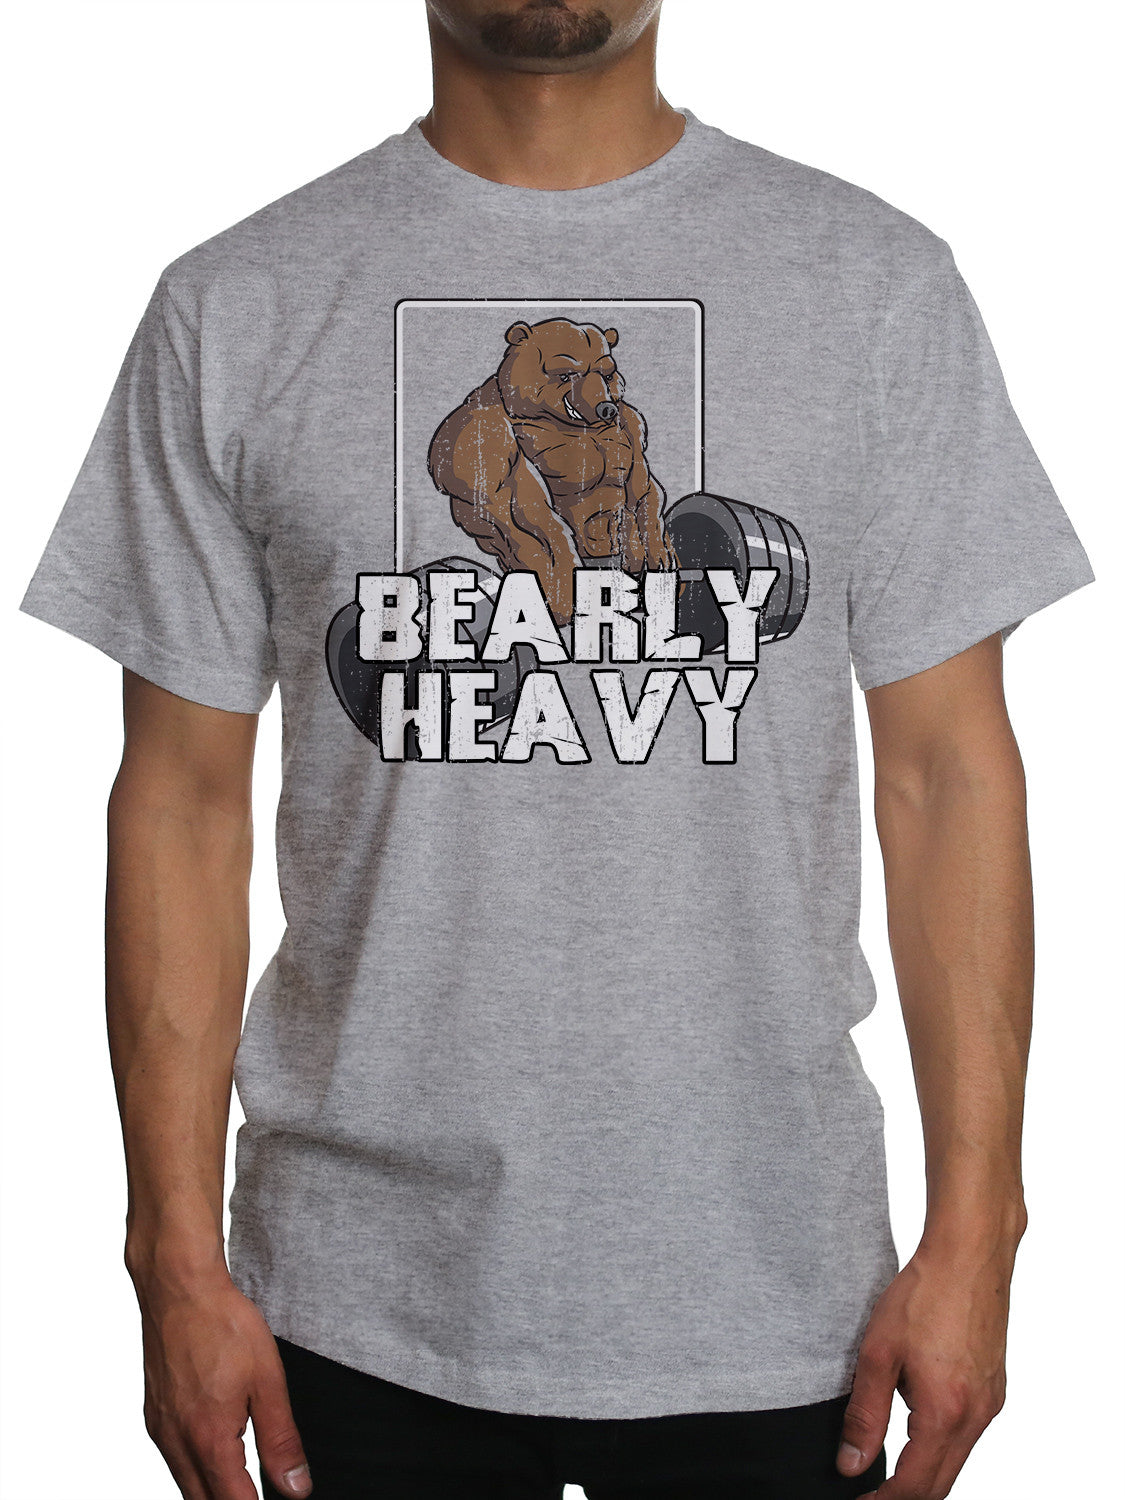 Bearly Heavy Gym Beast Lifting